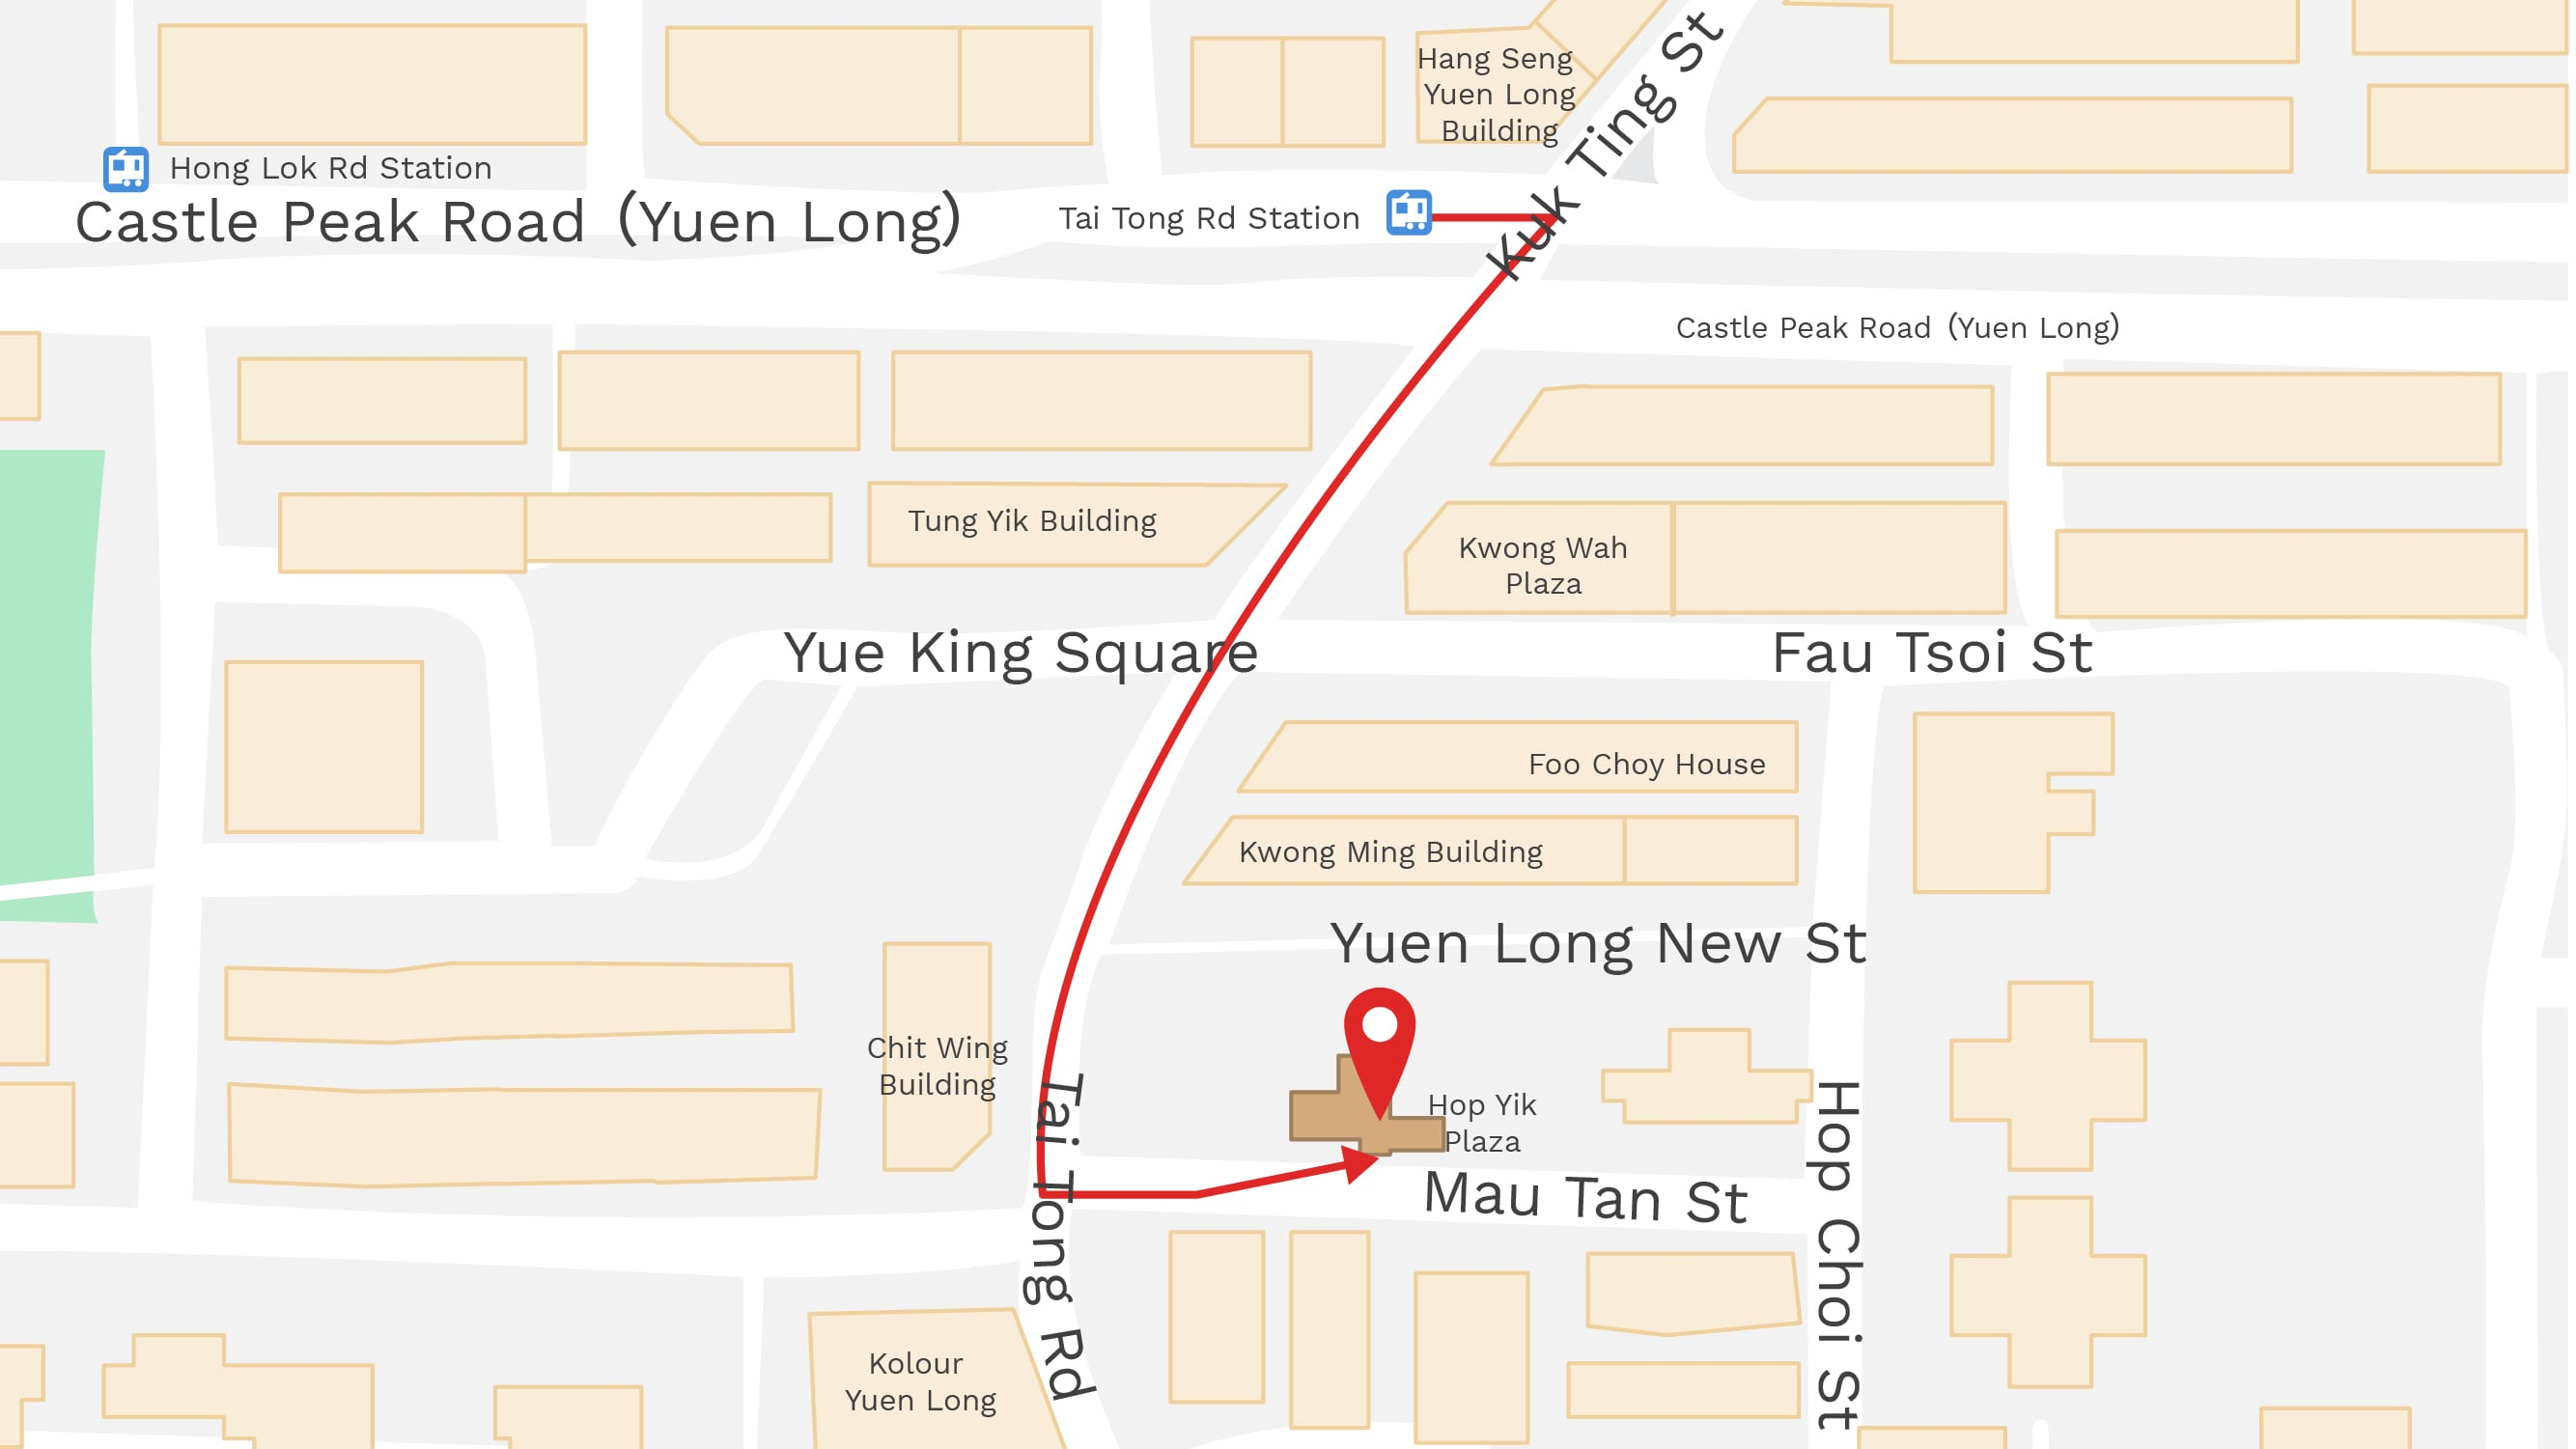 Map of Shop in Yuen Long